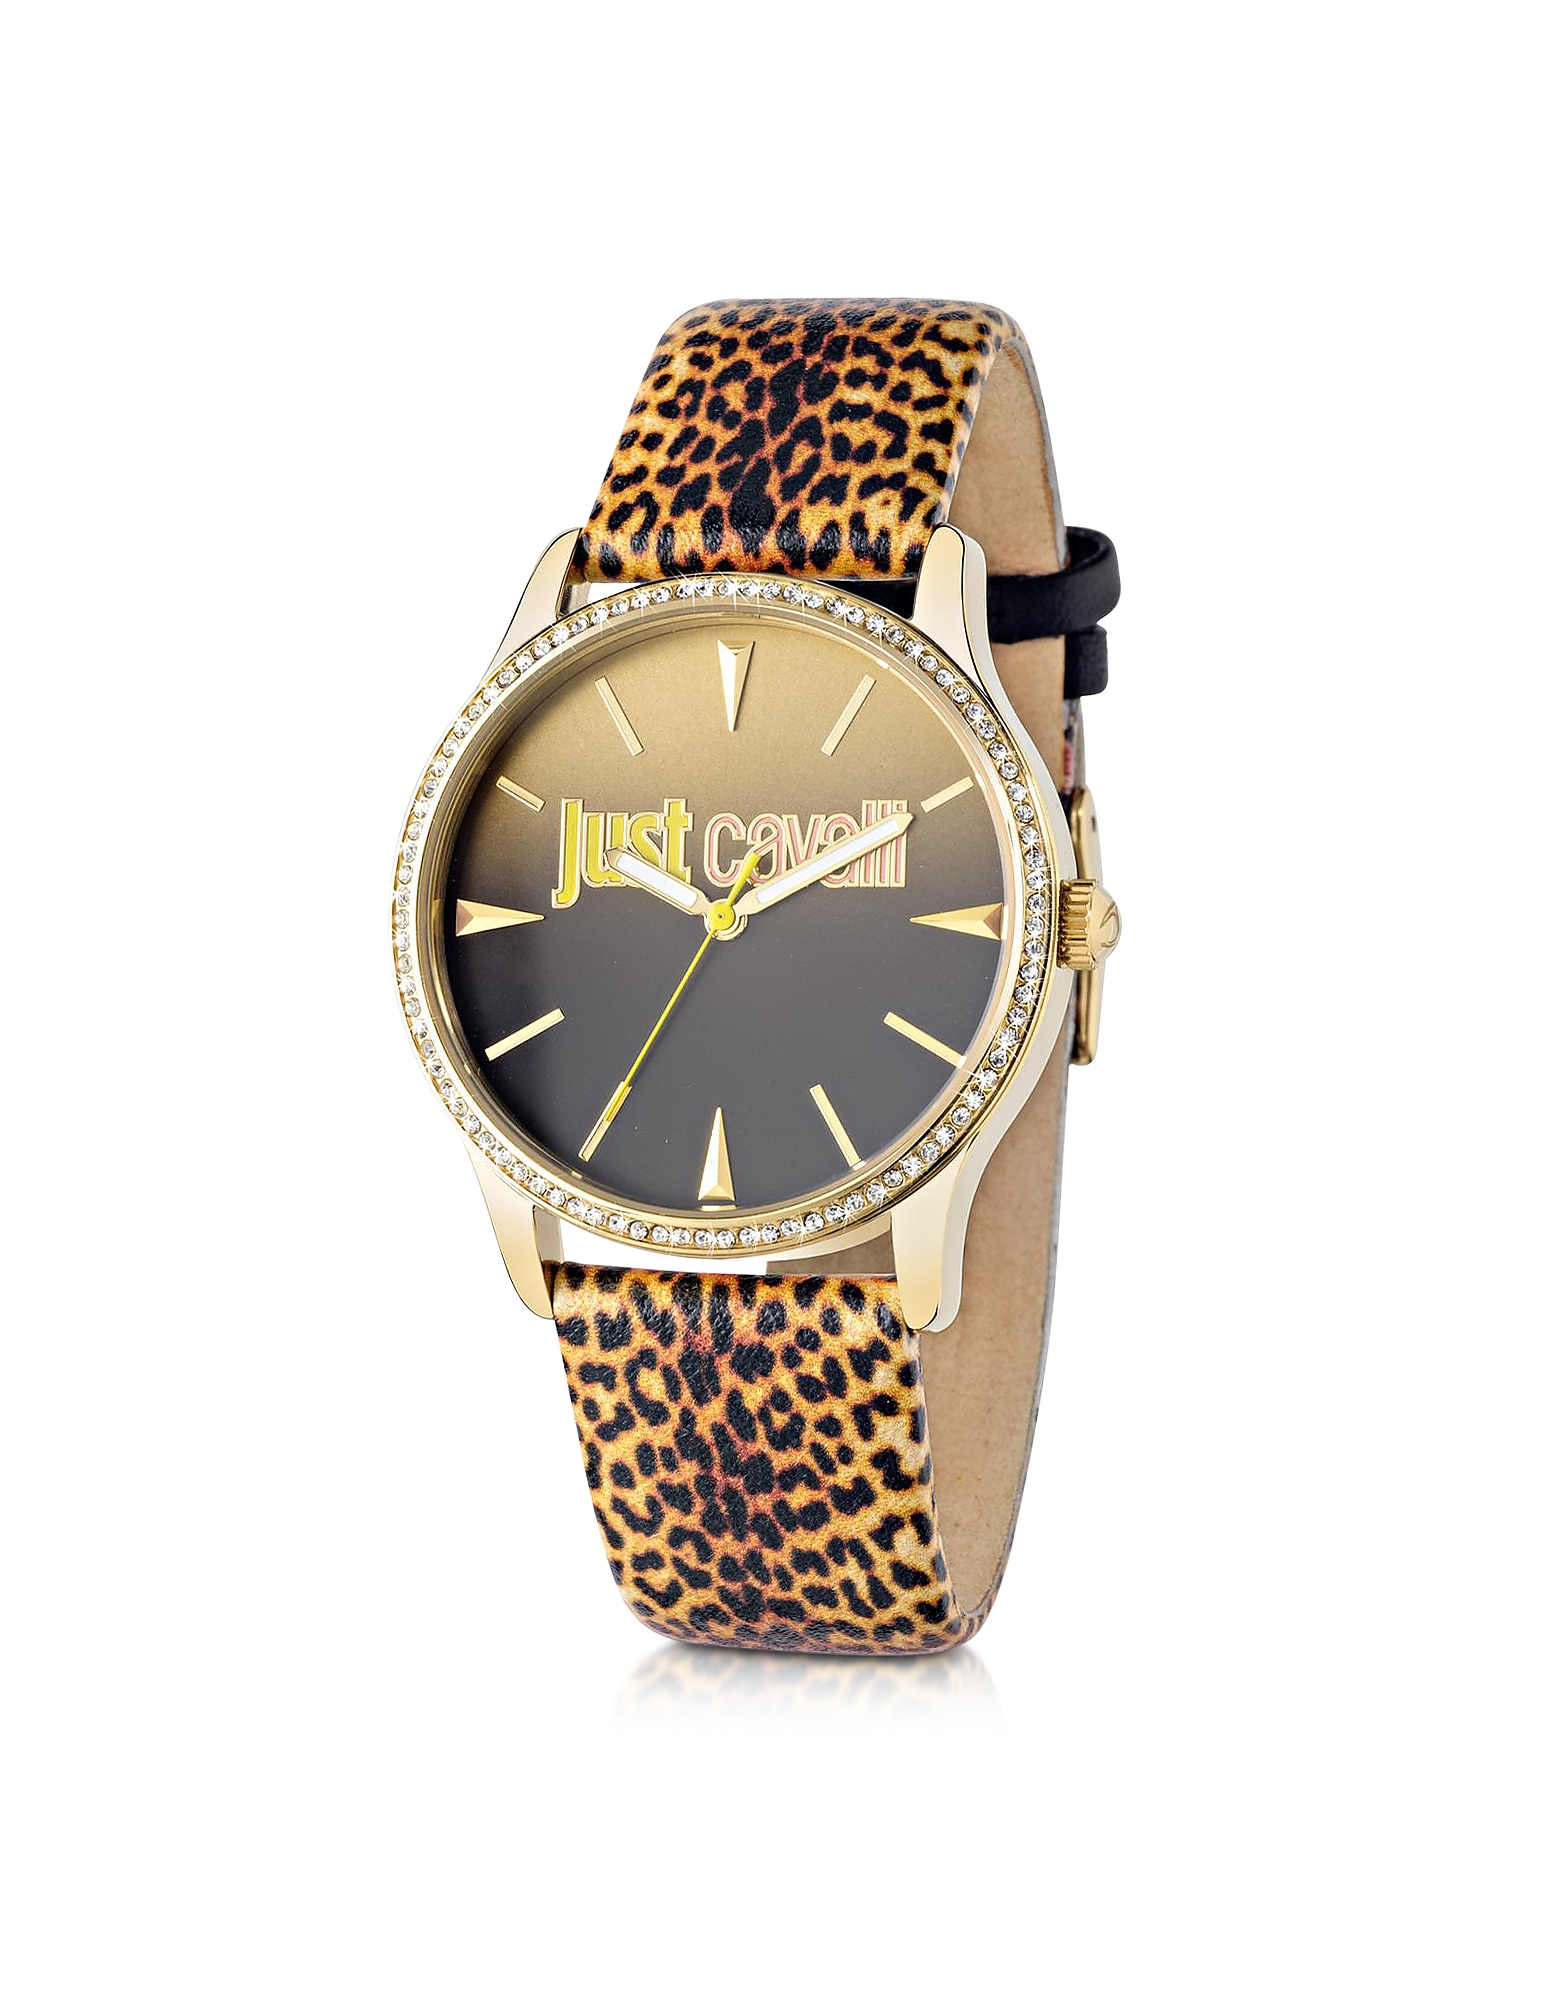 Just Cavalli Women's Watches, Just Paradise Yellow Animal Print Women's Watch